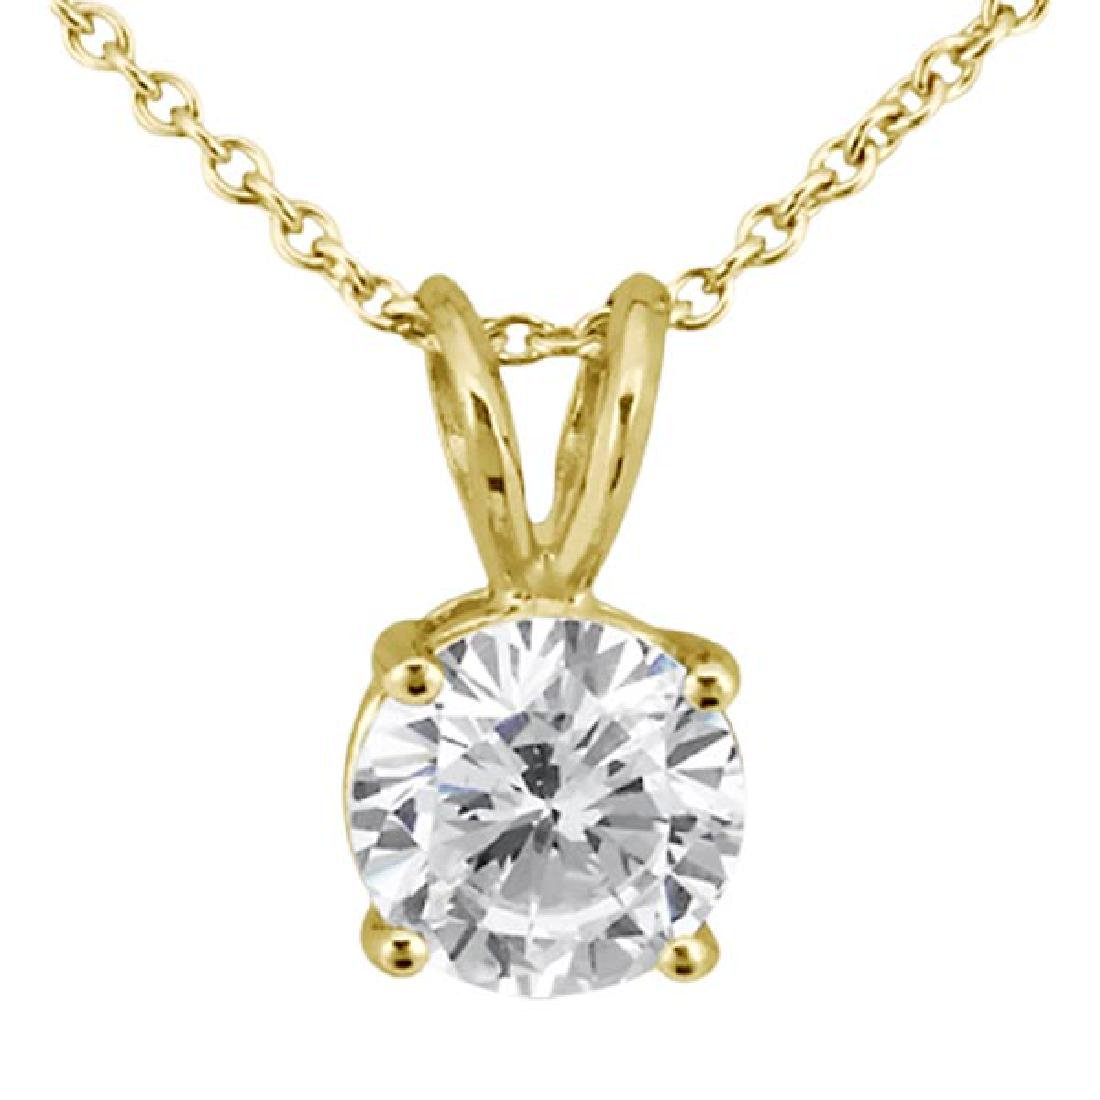 1.00ct. Round Diamond Solitaire Pendant in 18k Yellow G